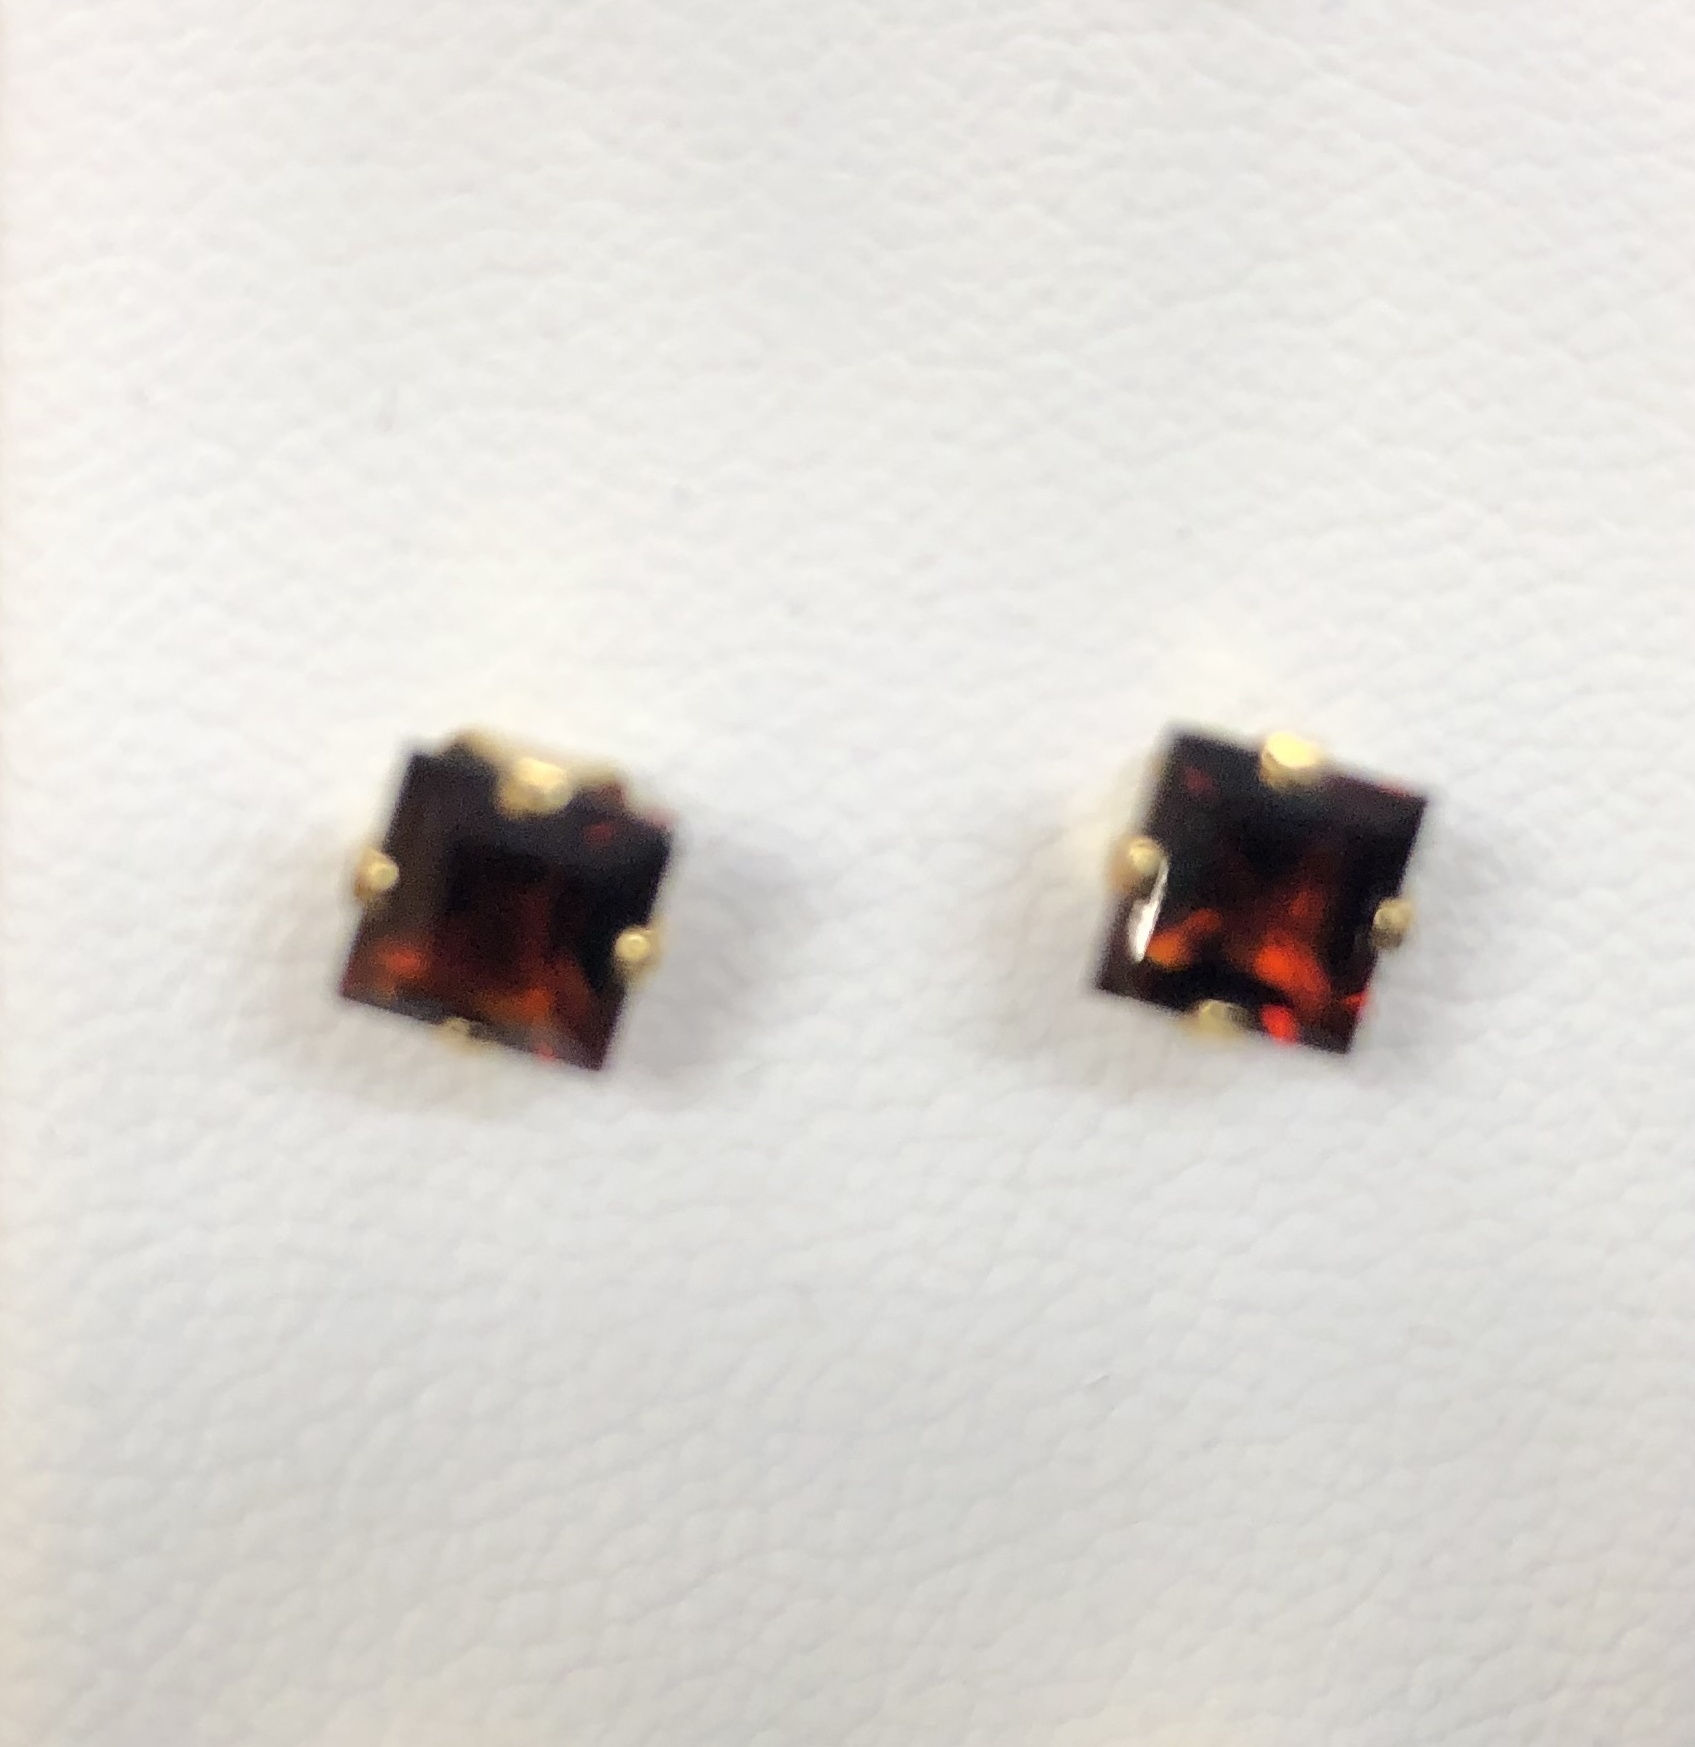 14KT .30DWT Square Red Stone Earings